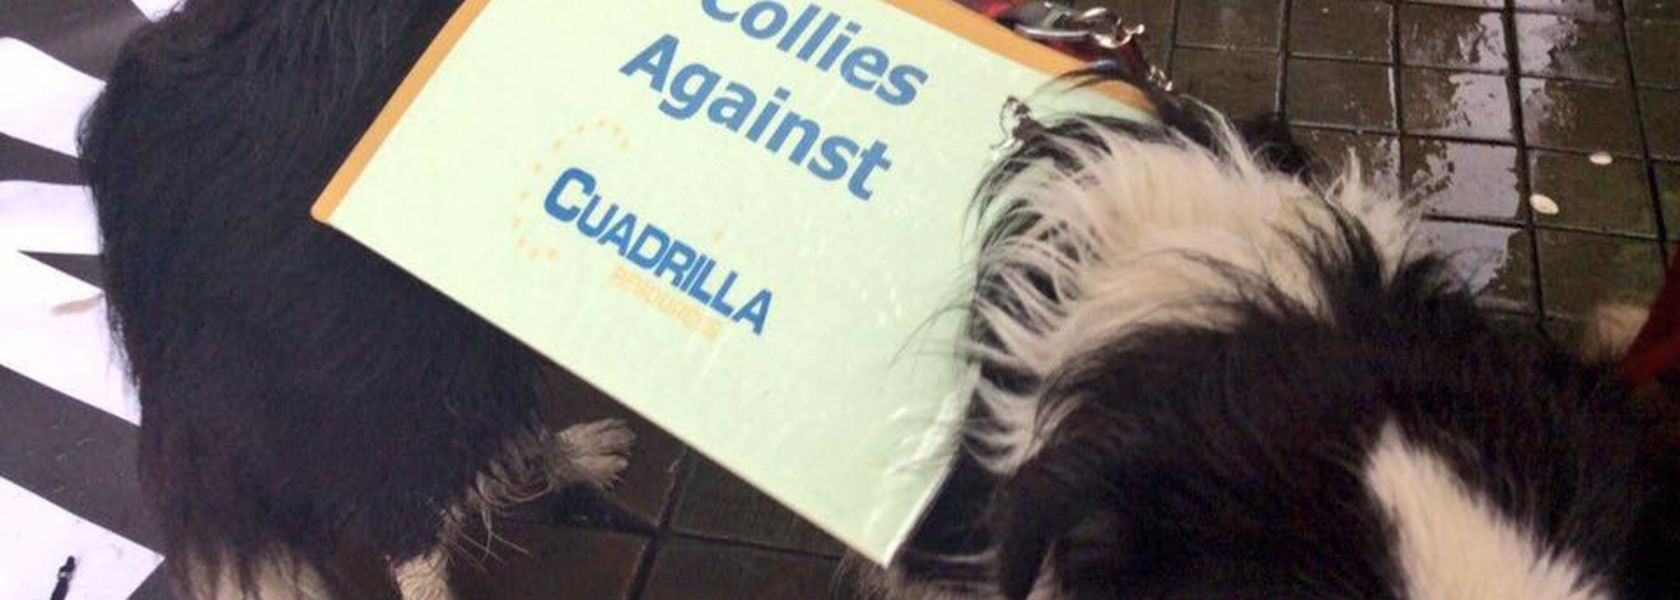 Cuadrilla claims knocked back by UK government